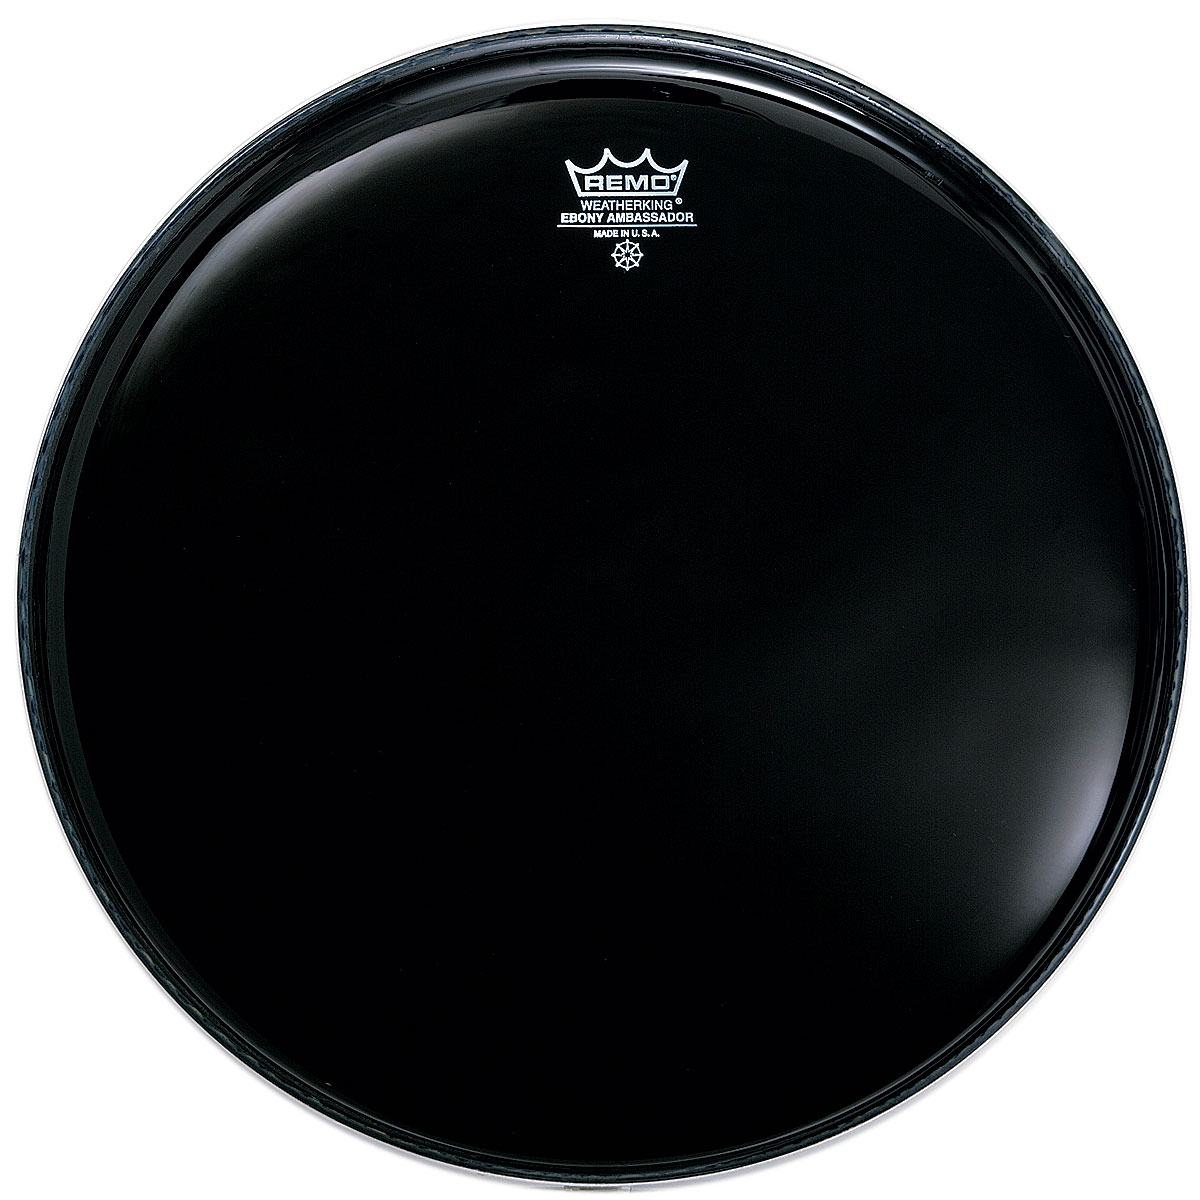 "Remo 13"" Ambassador Ebony Drum Head"